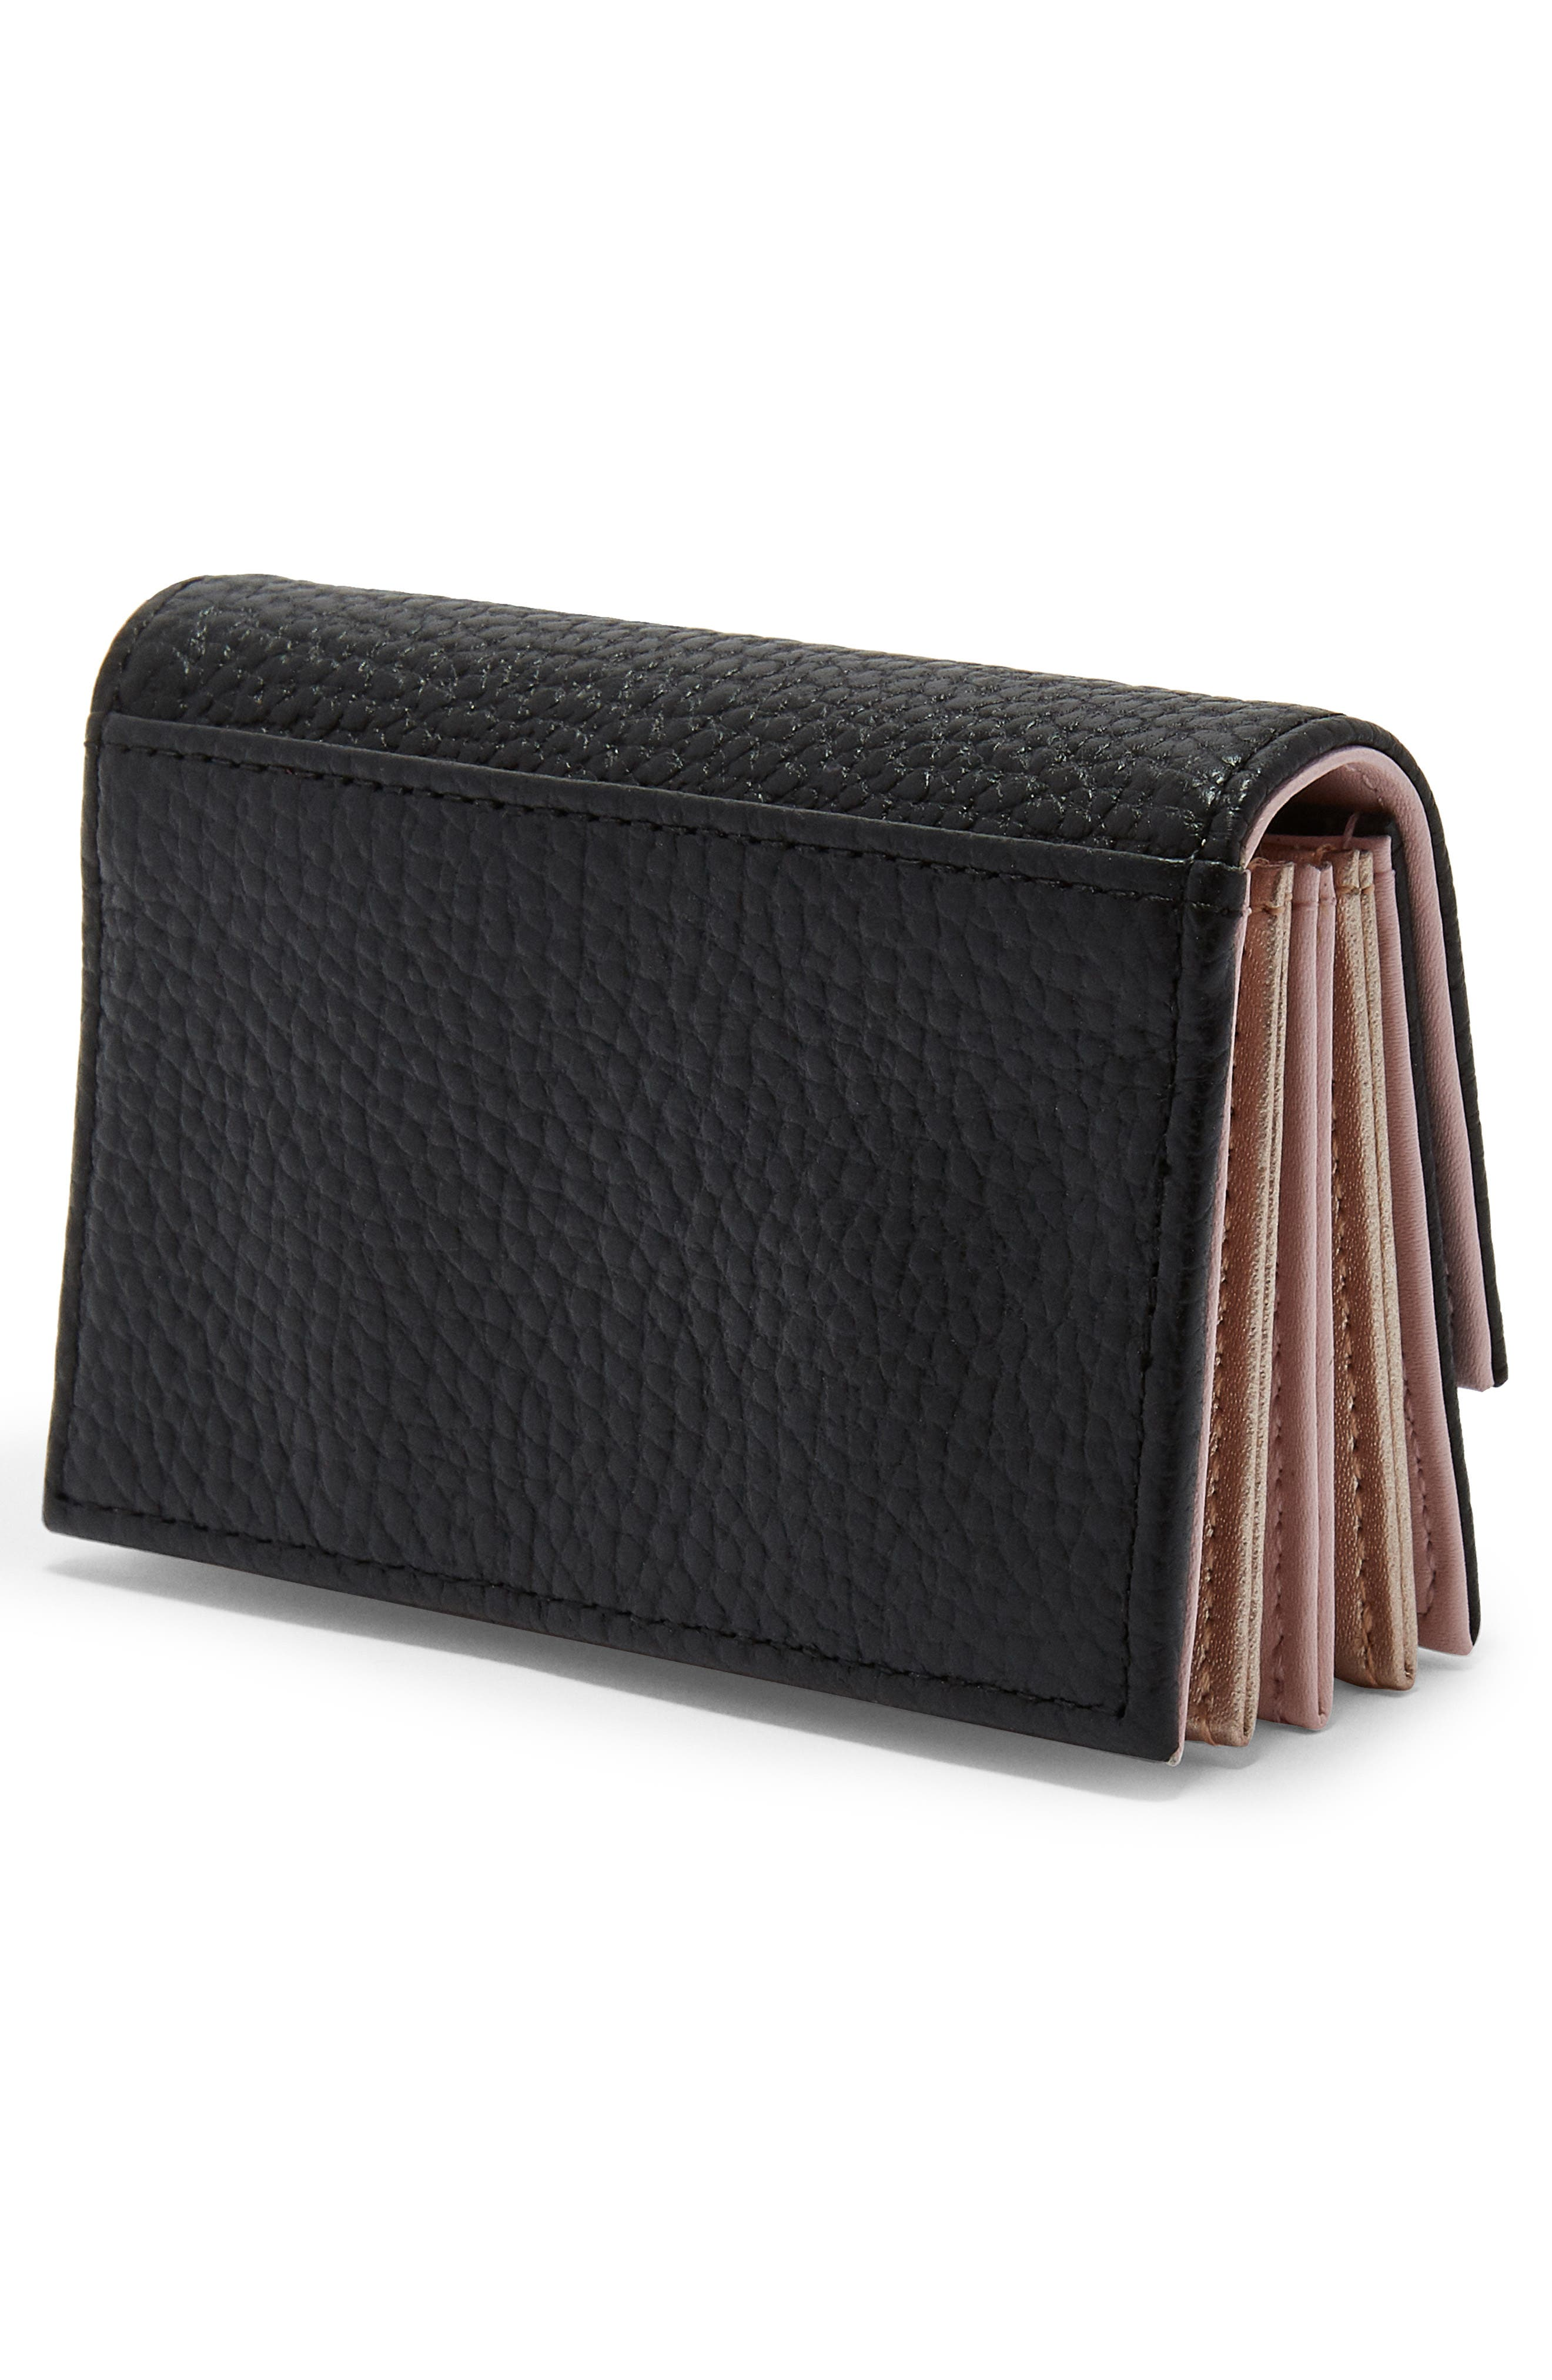 Eves Accordion Leather Card Case,                             Alternate thumbnail 3, color,                             Black